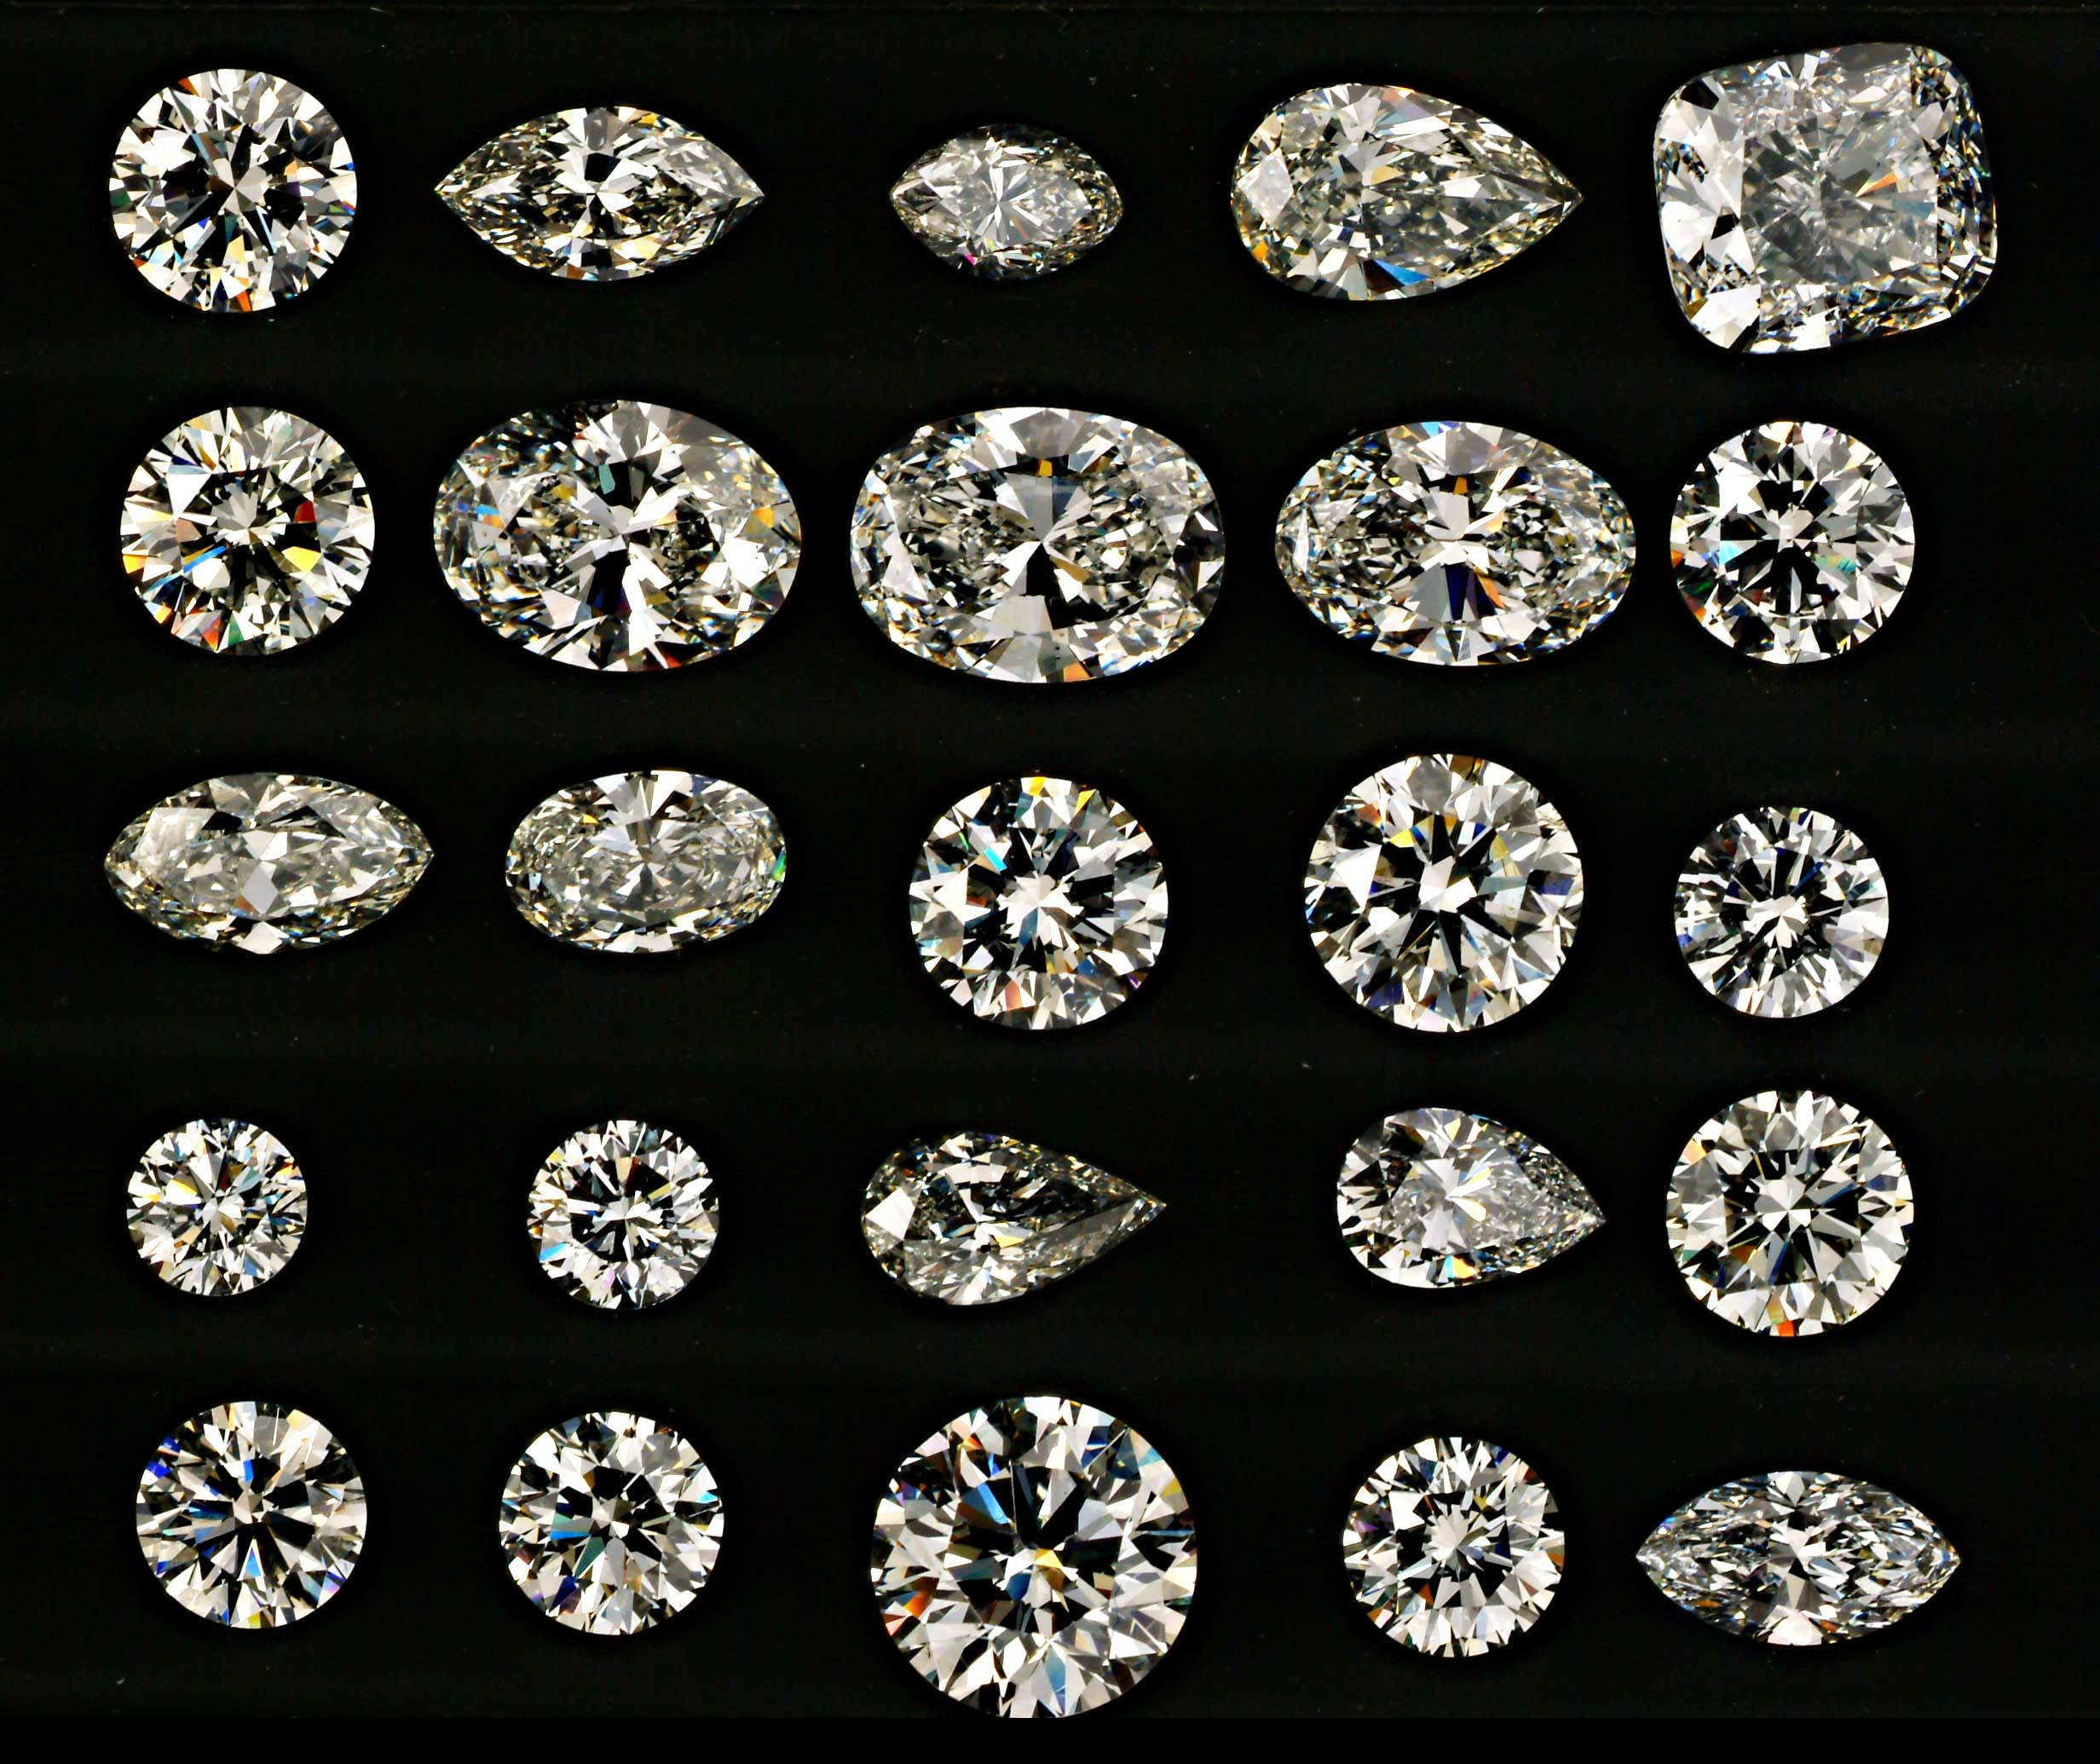 you the of is make to blogs see each specifications diamonds customers custom we here made unique jewelry means which your are a that wholesale every articles luxe pictures fluorescence piece diamond